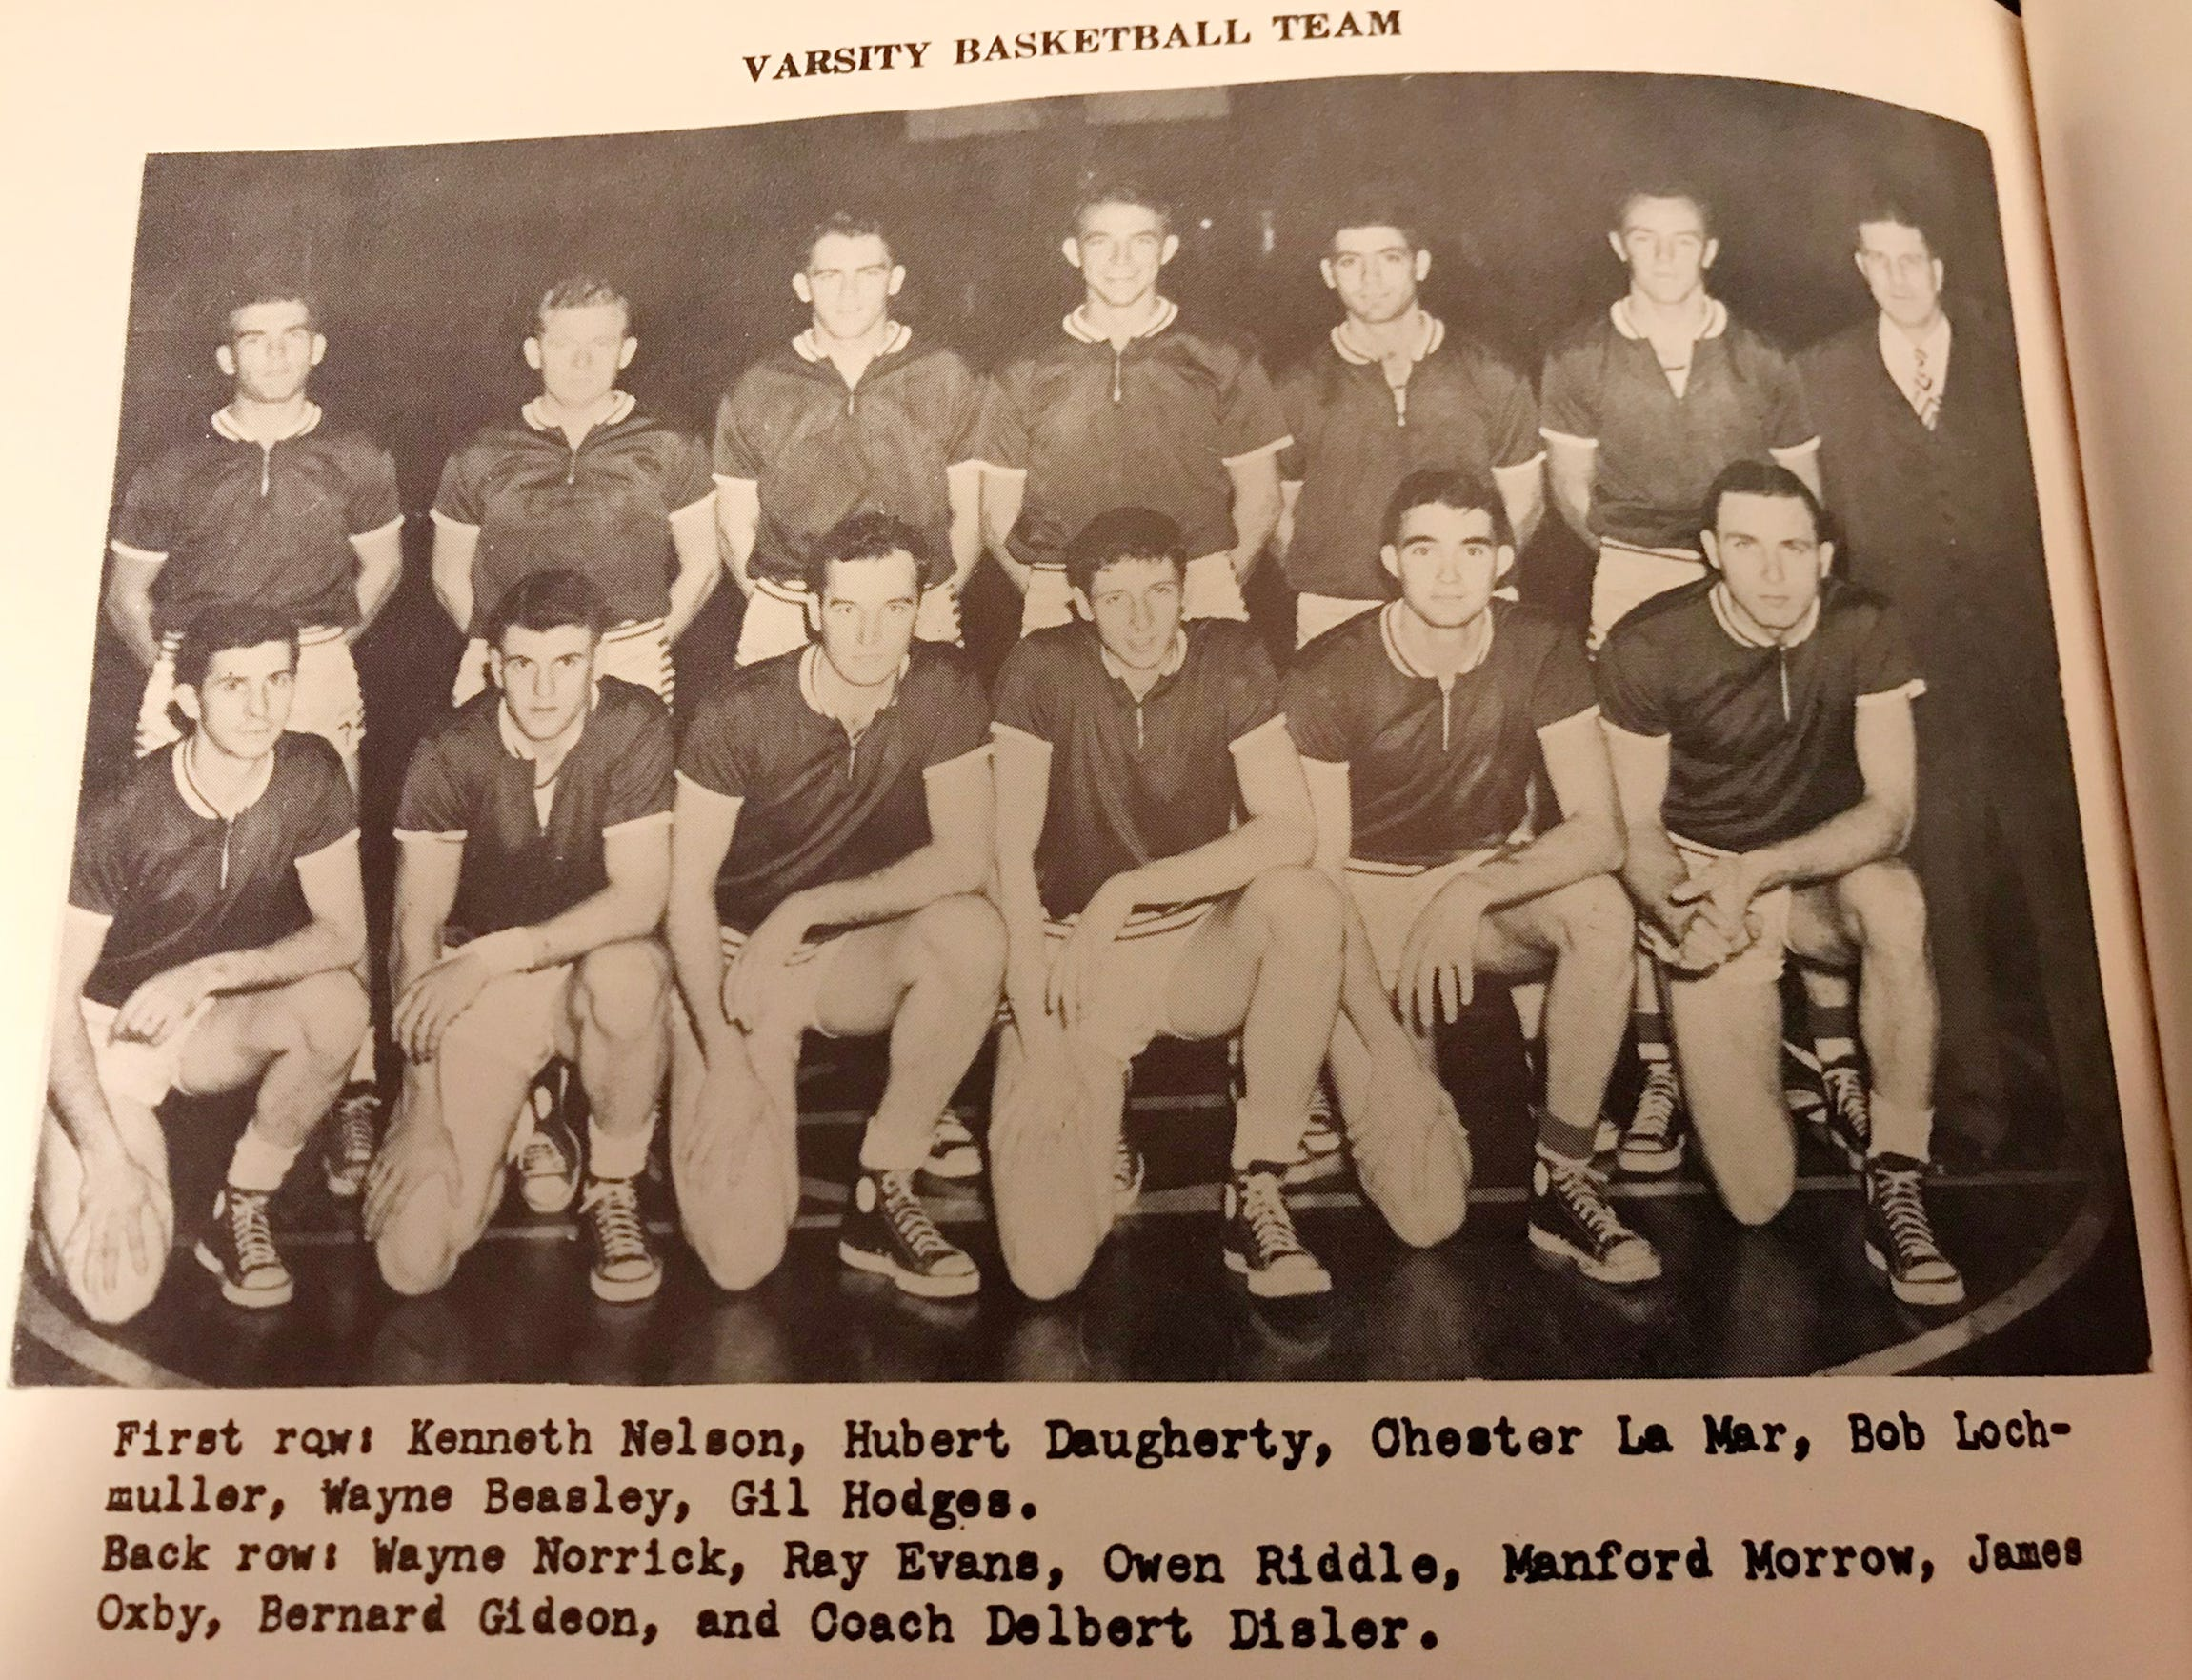 Gil Hodges' Oakland City College basketball team.